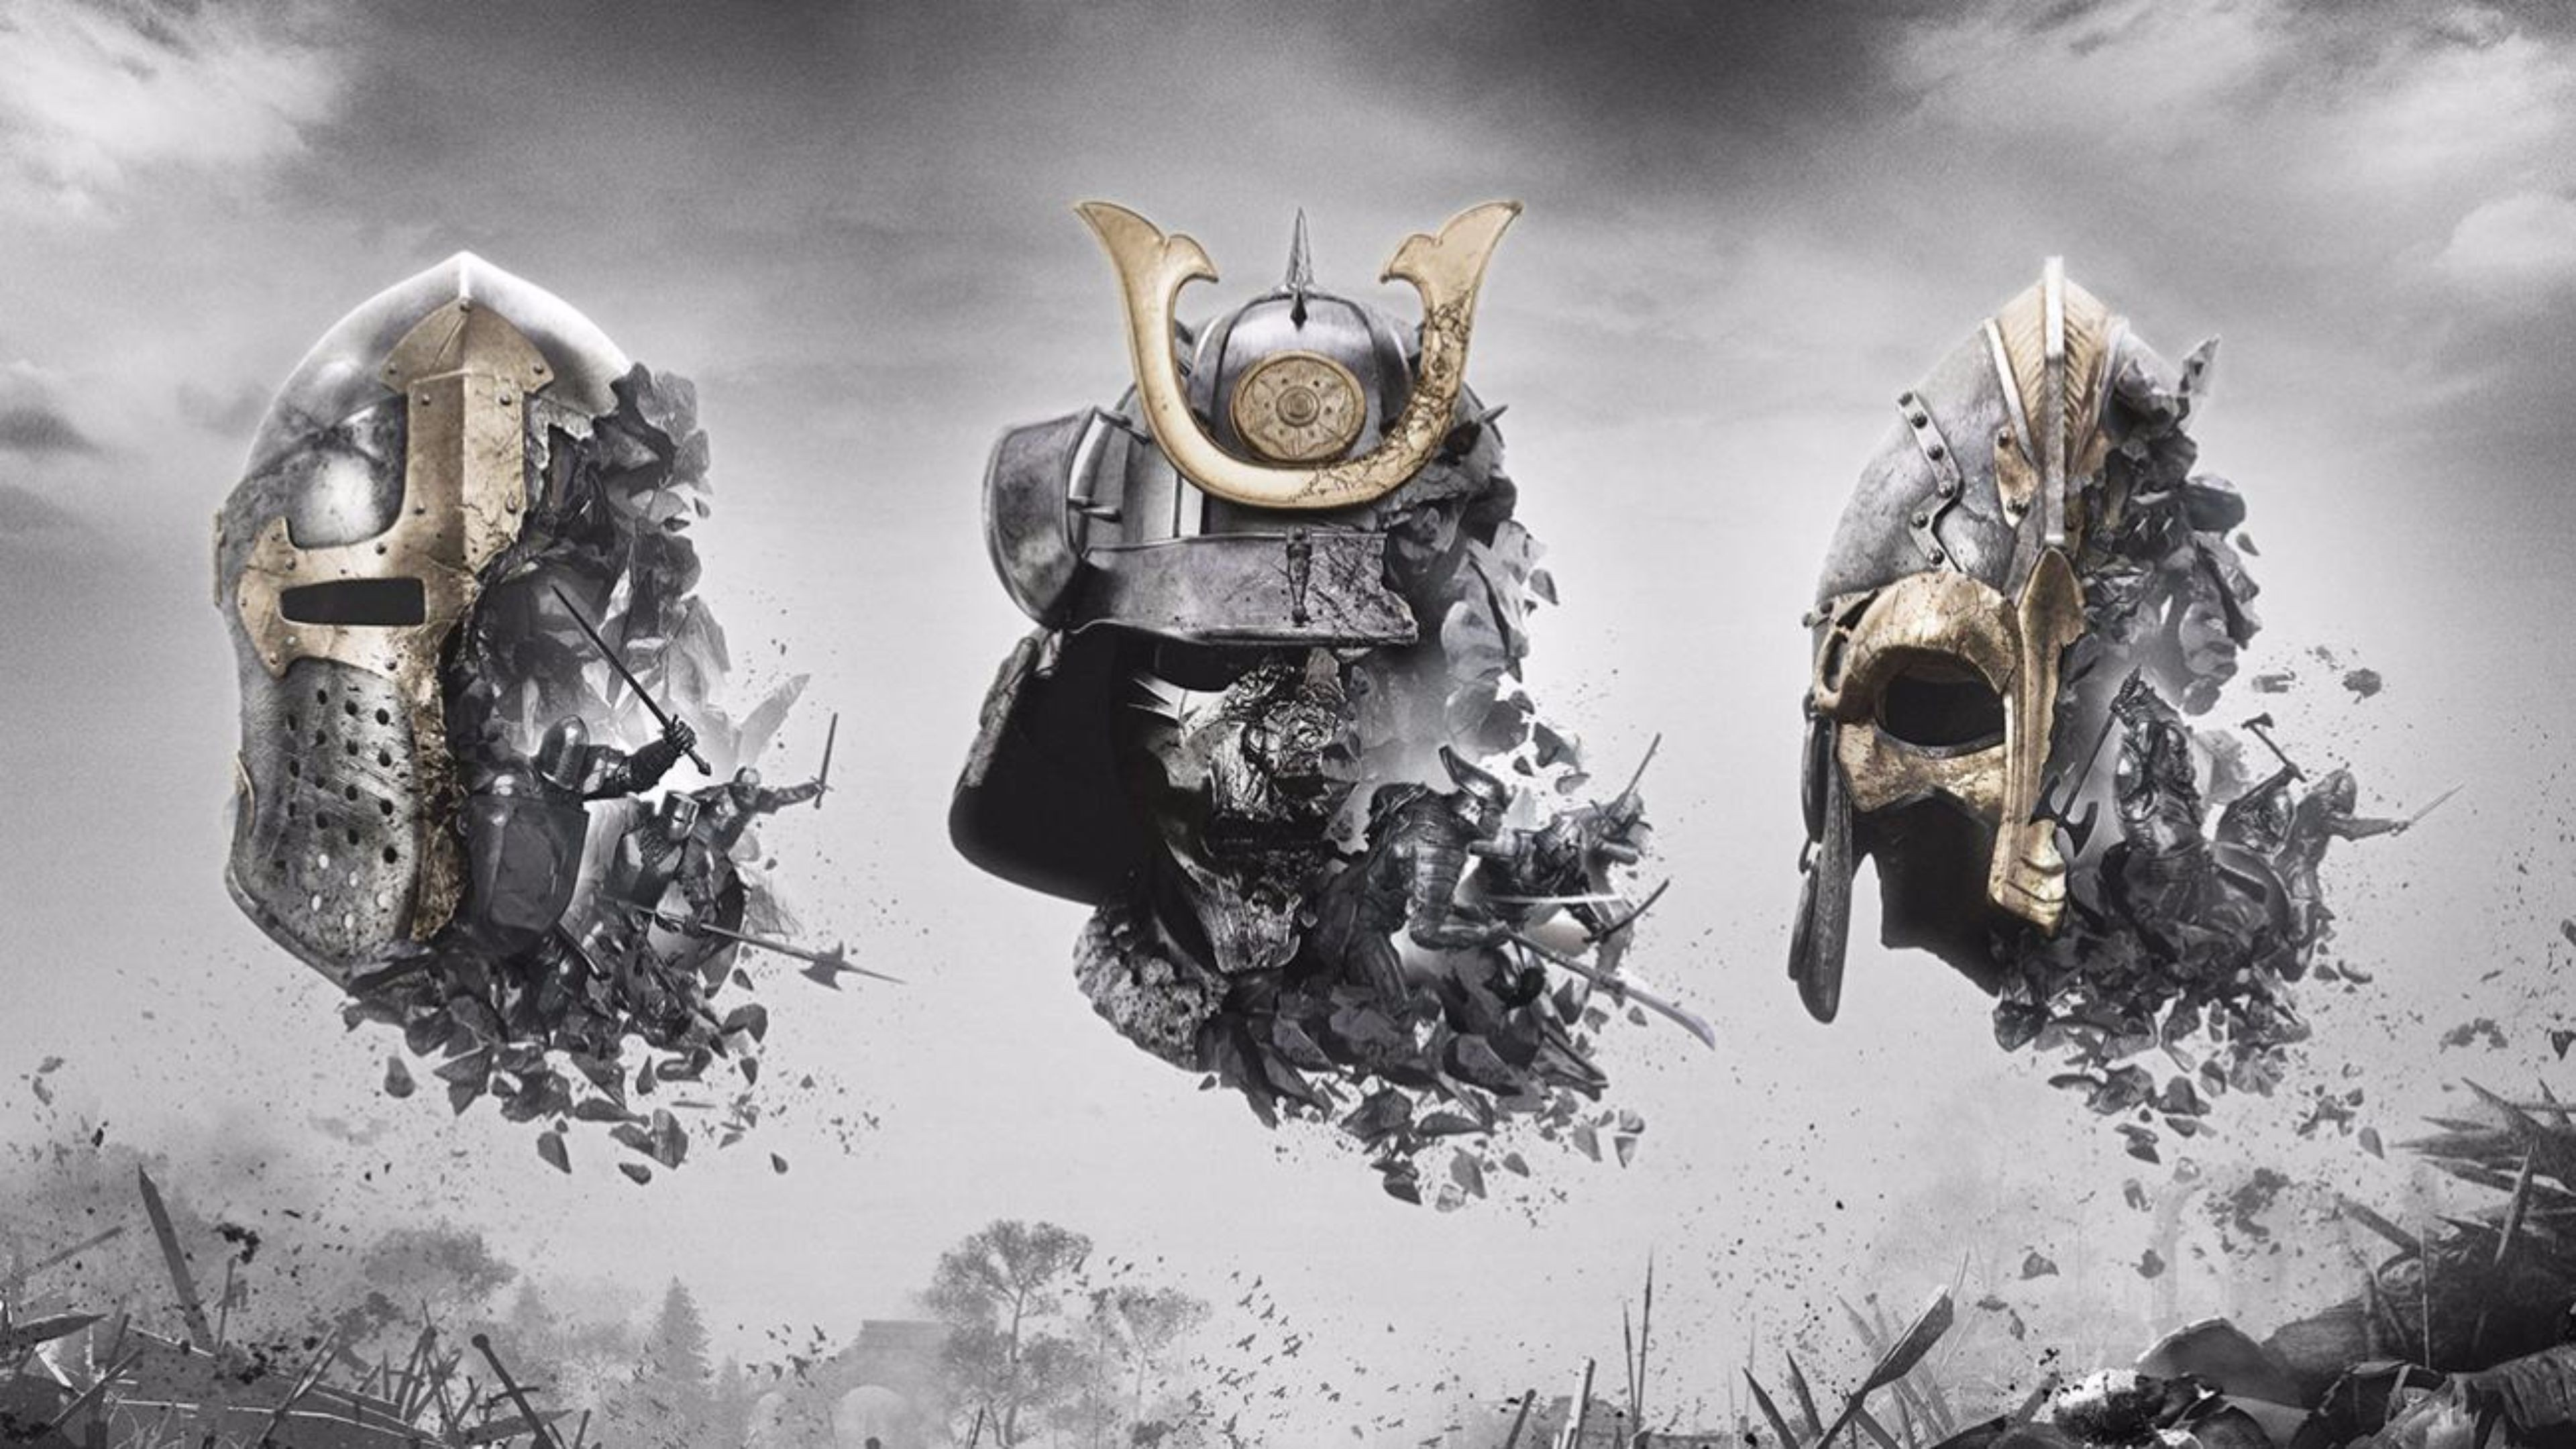 For Honor wallpaper ·① Download free stunning HD ...